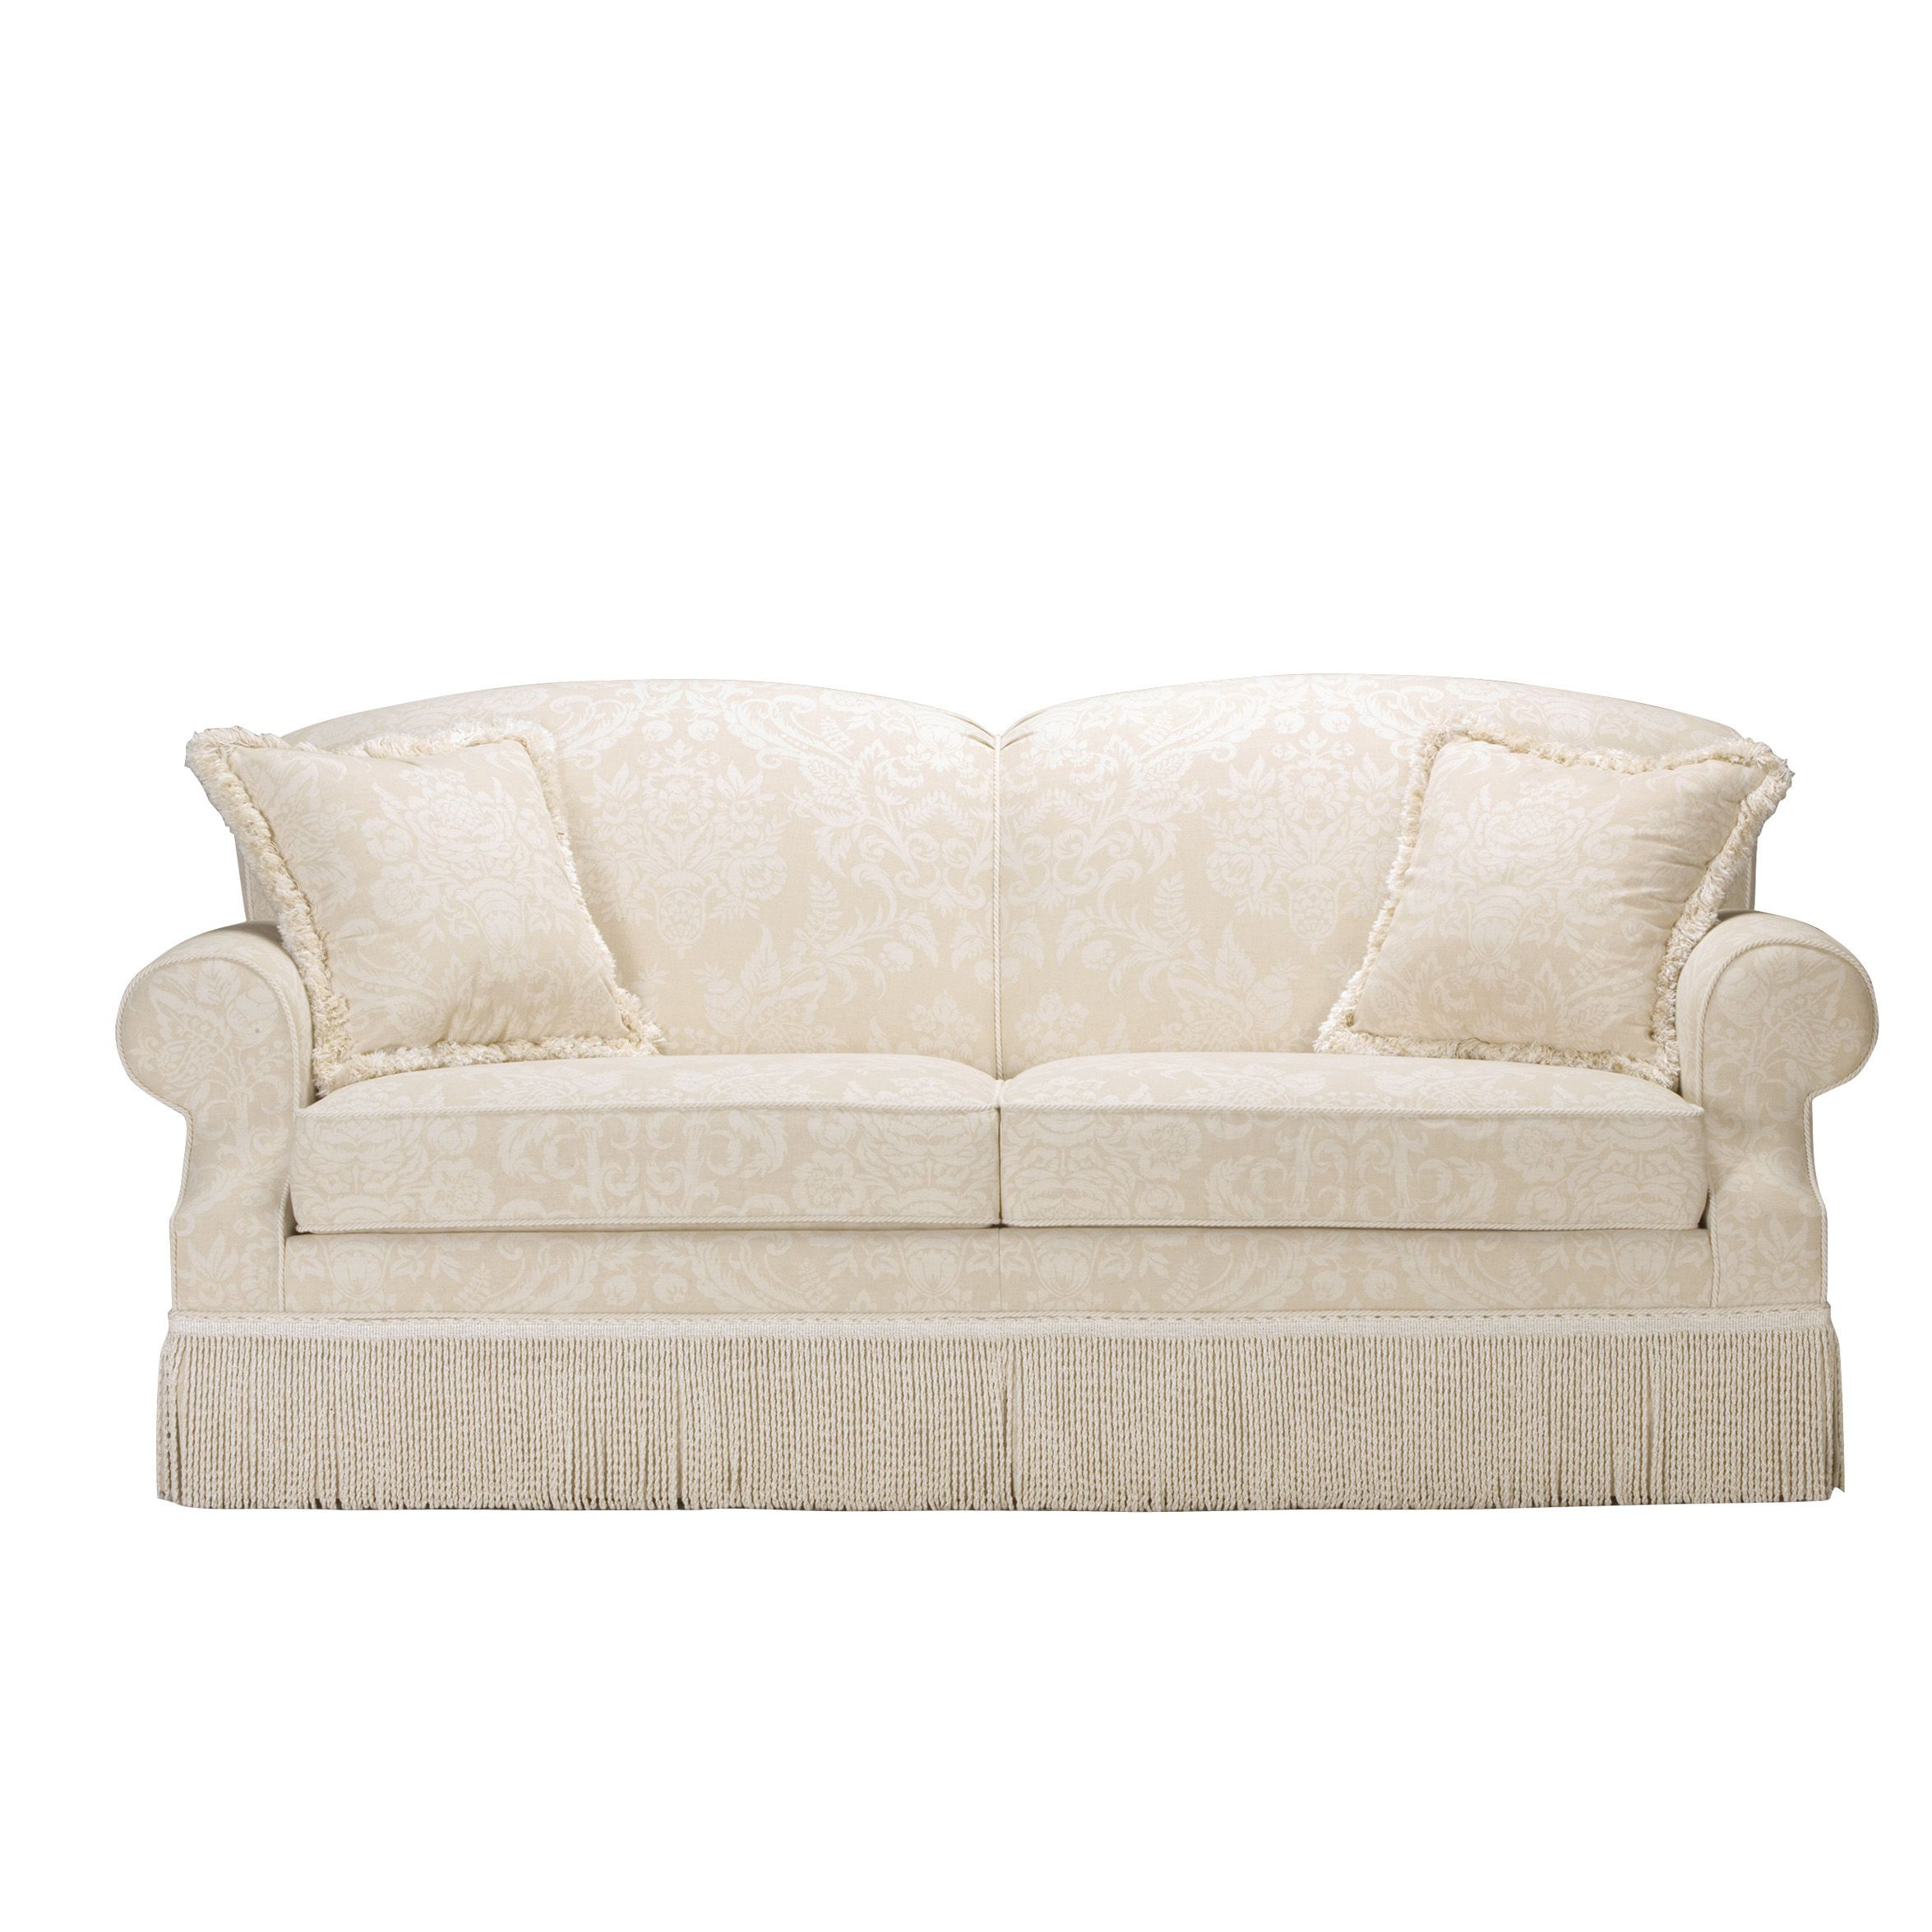 Montgomery Sofas - Ethan Allen US | Stuff to Buy | Living ...